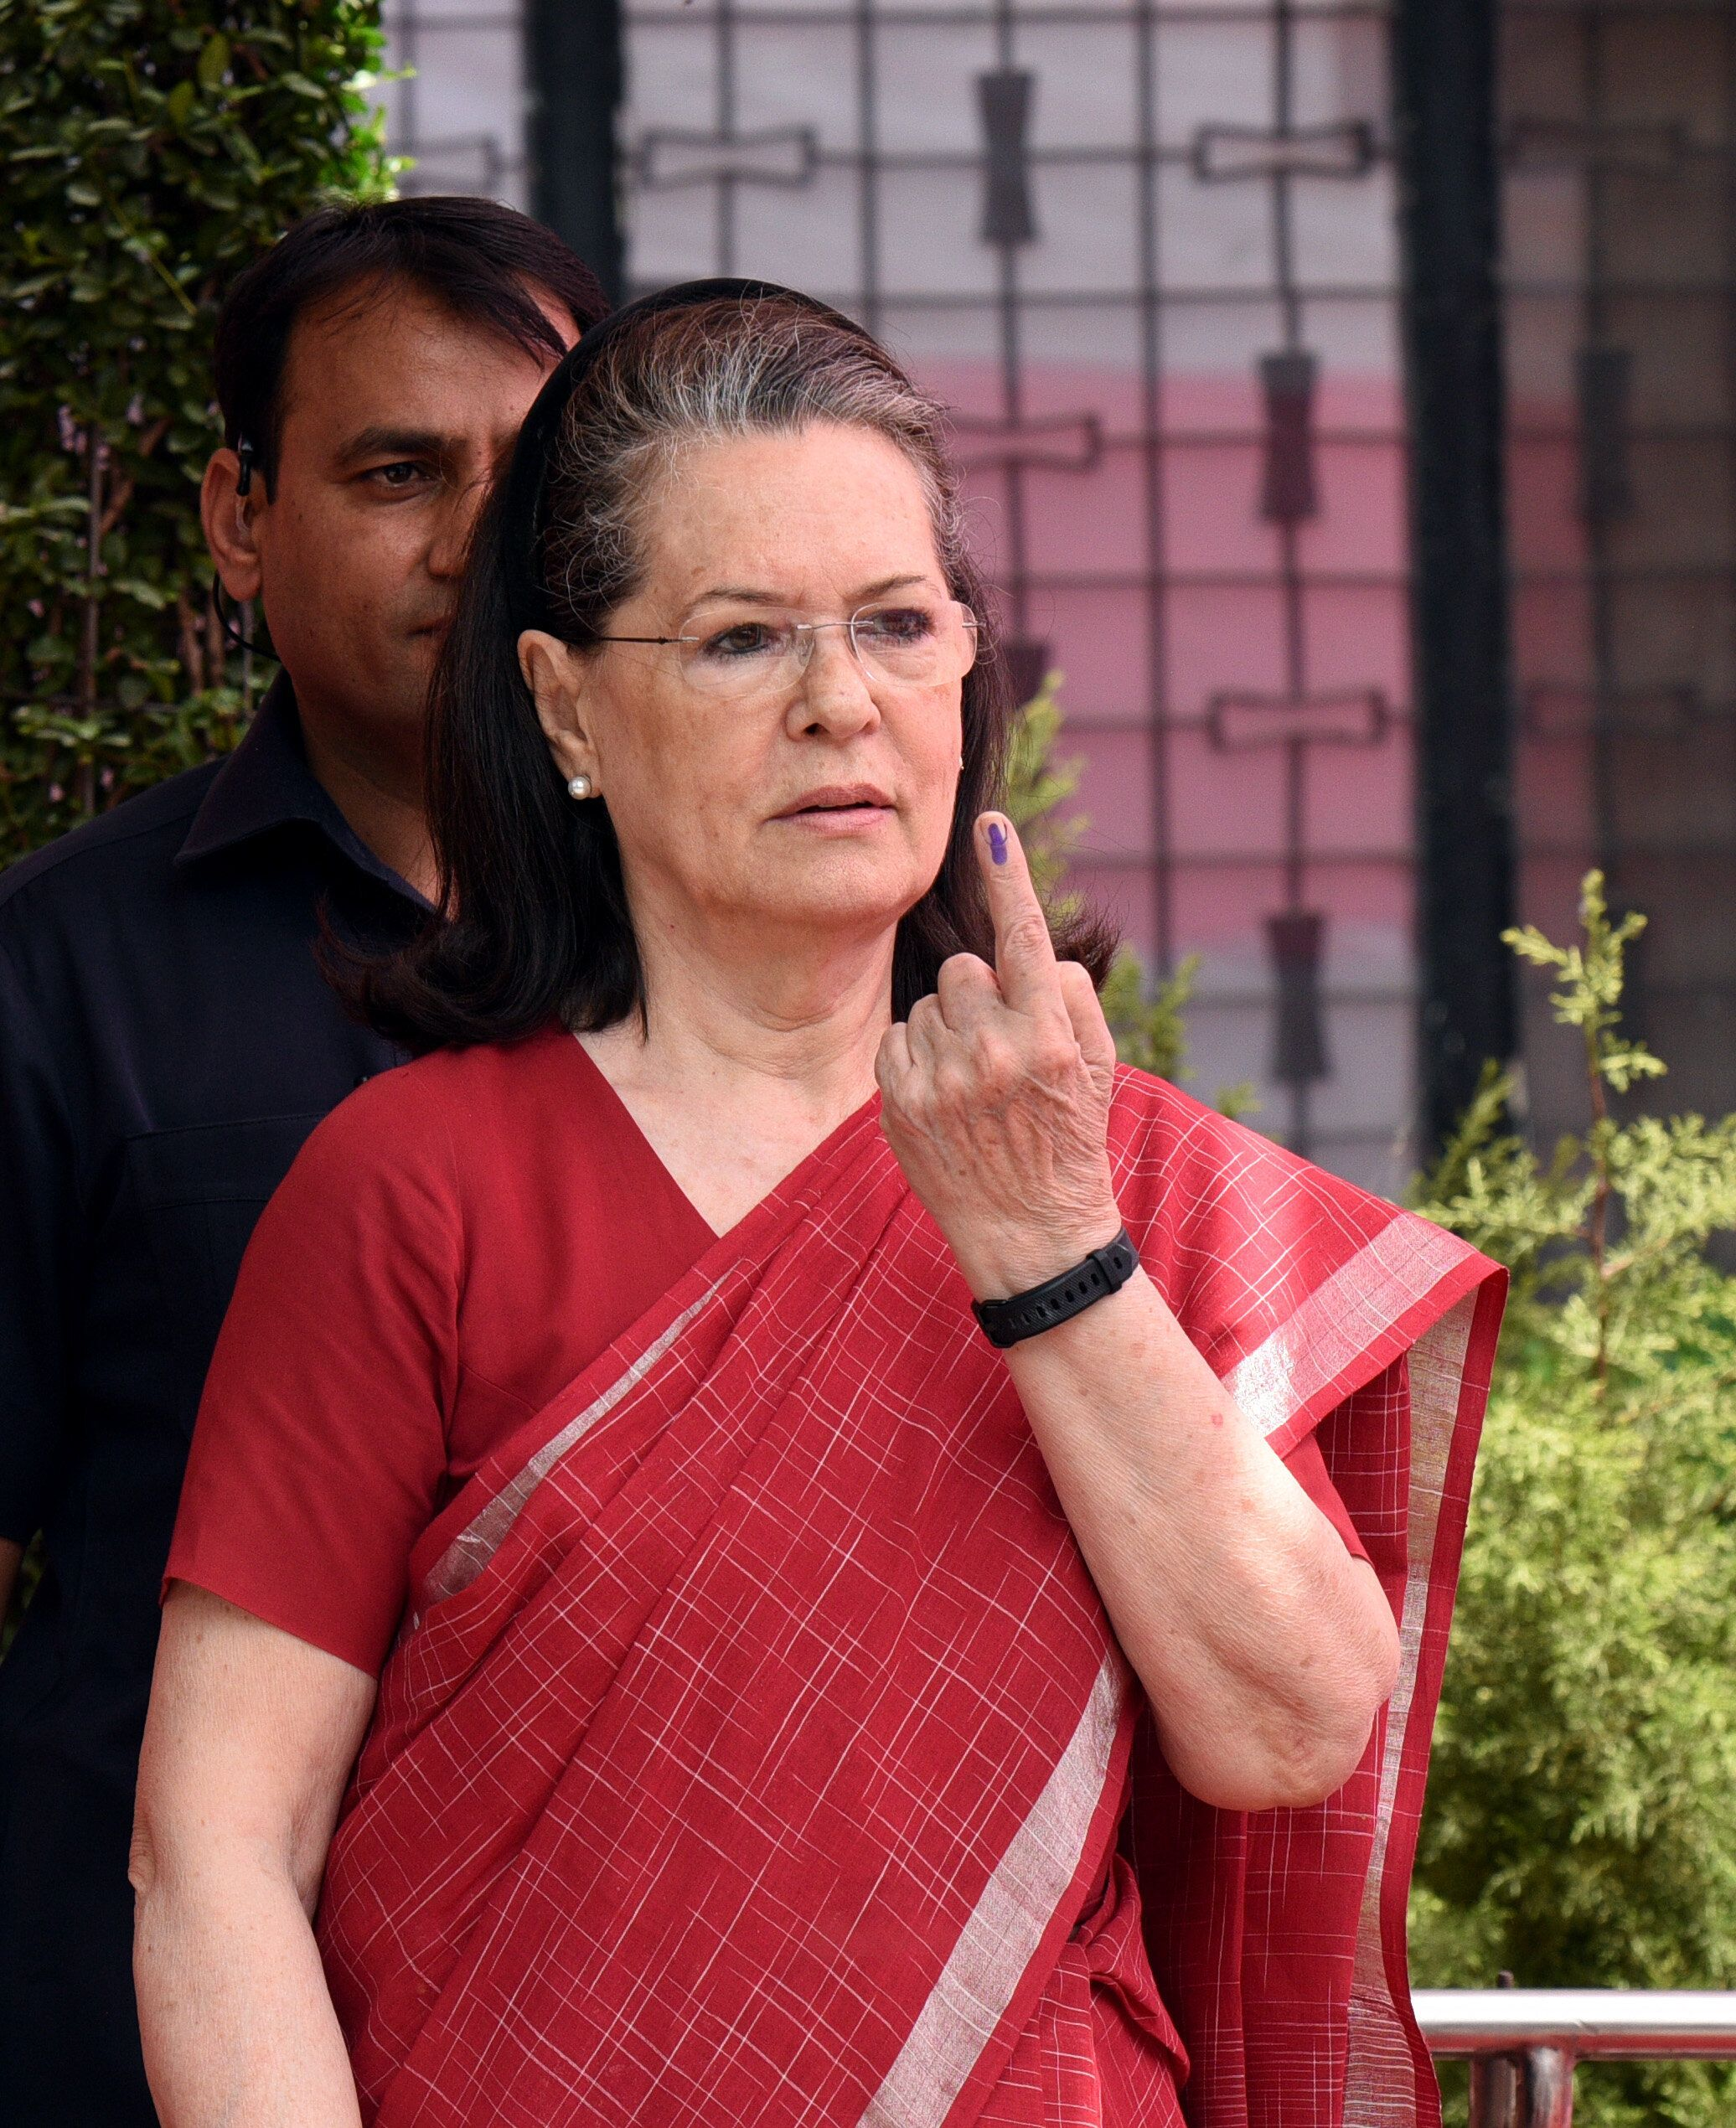 Elections 2019: Sonia Gandhi Leading In UP's Rae